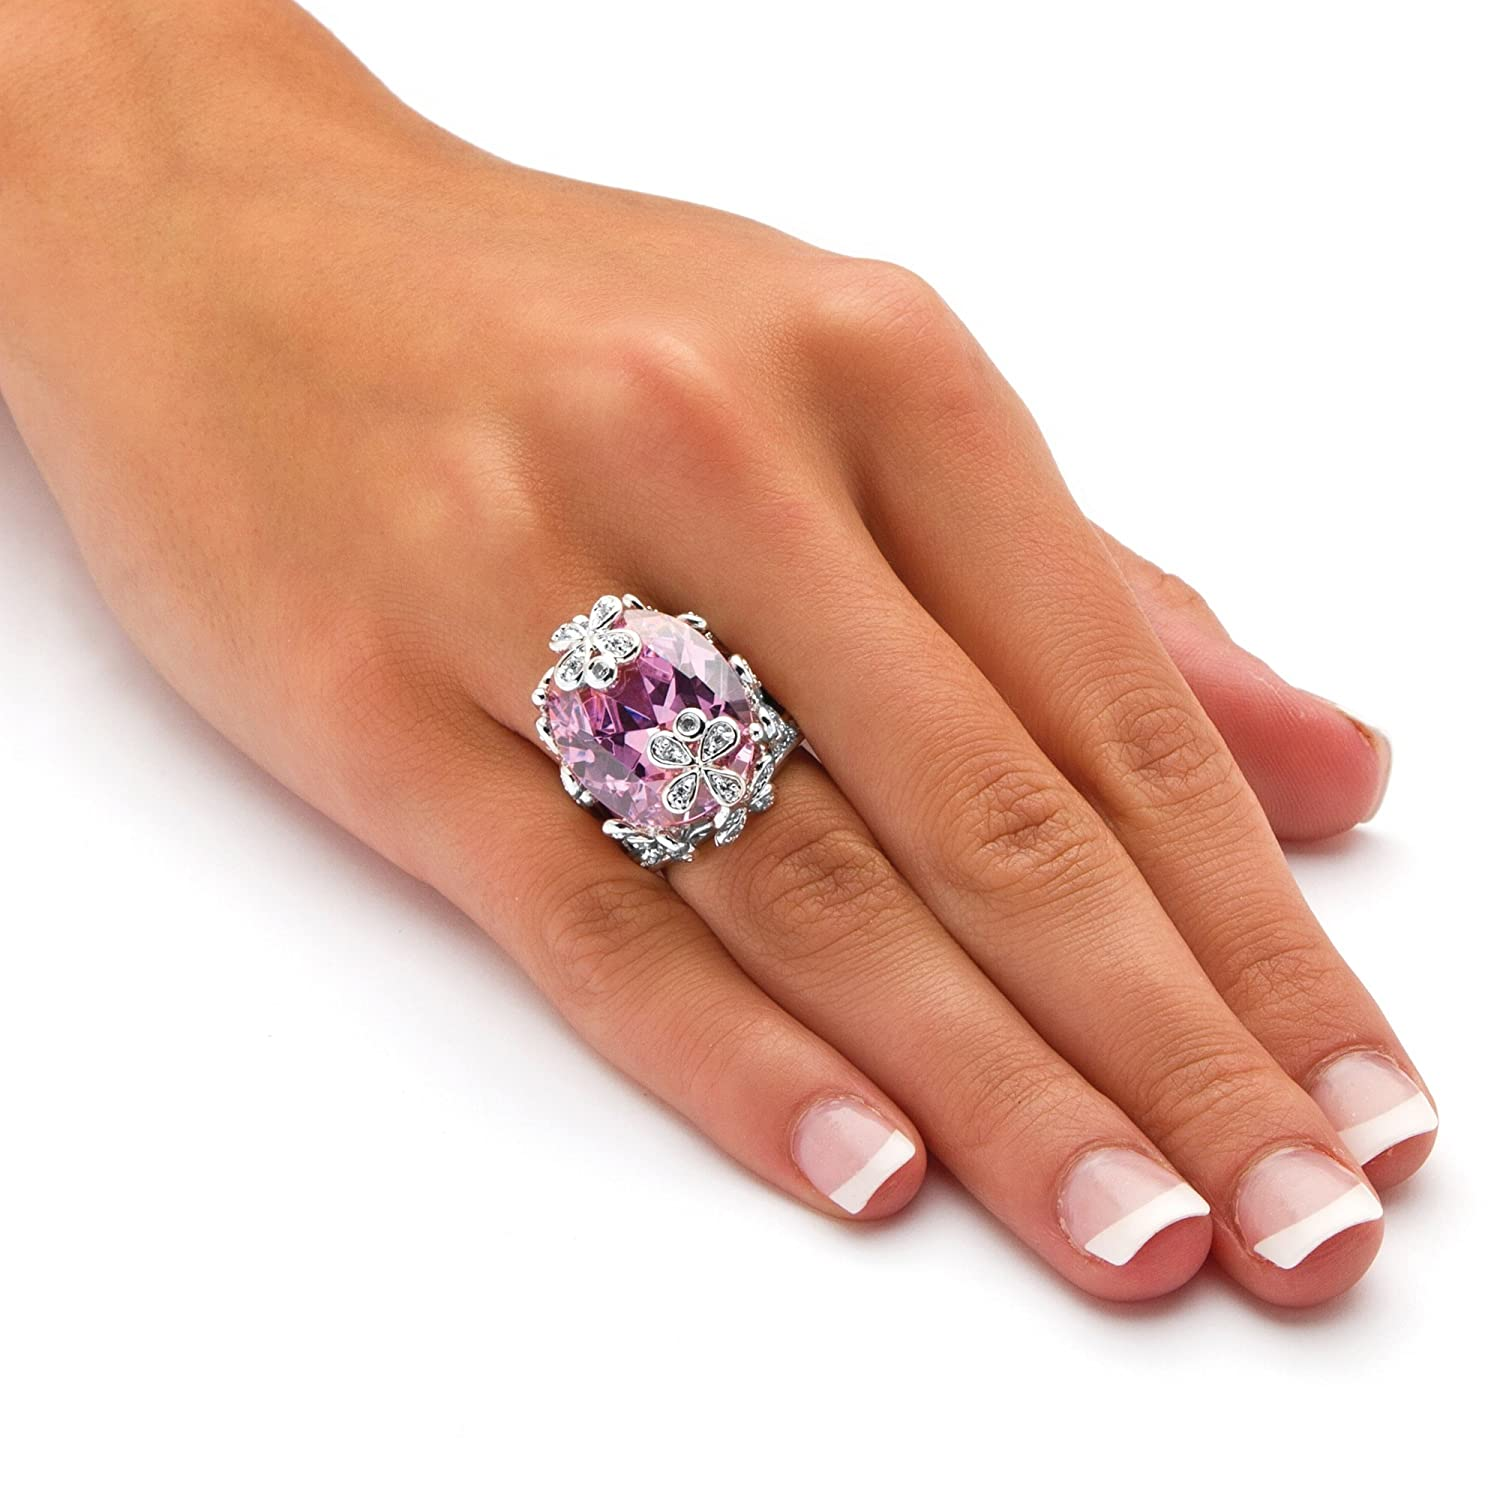 Silver Tone Oval Cut Pink Cubic Zirconia Butterfly and Flower Ring